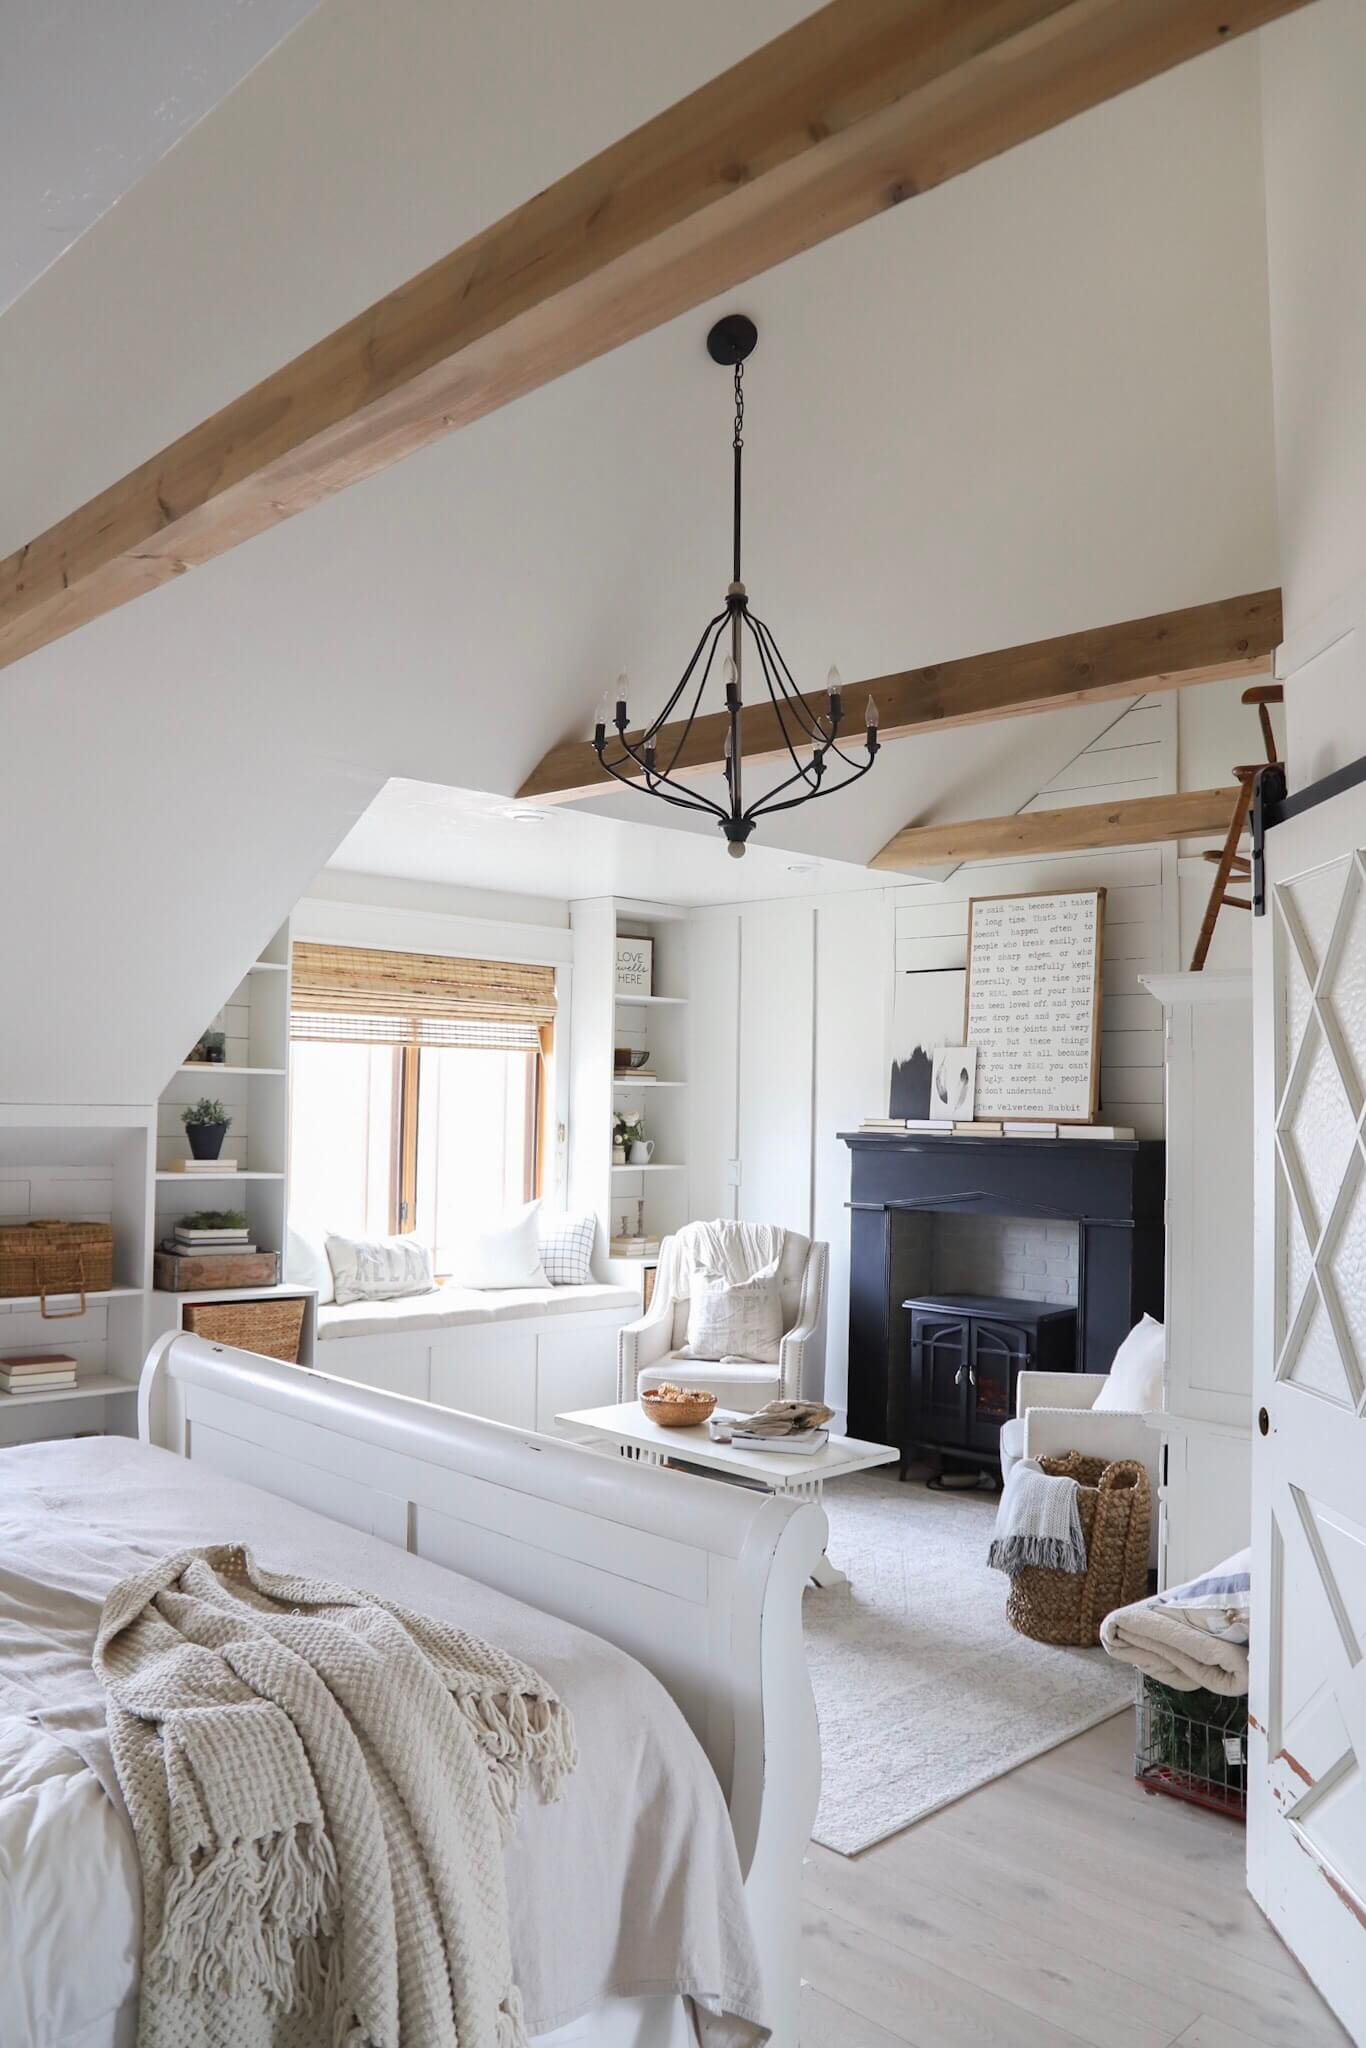 Gorgeous master bedroom retreat with exposed beams, a farmhouse style fireplace and so much more!